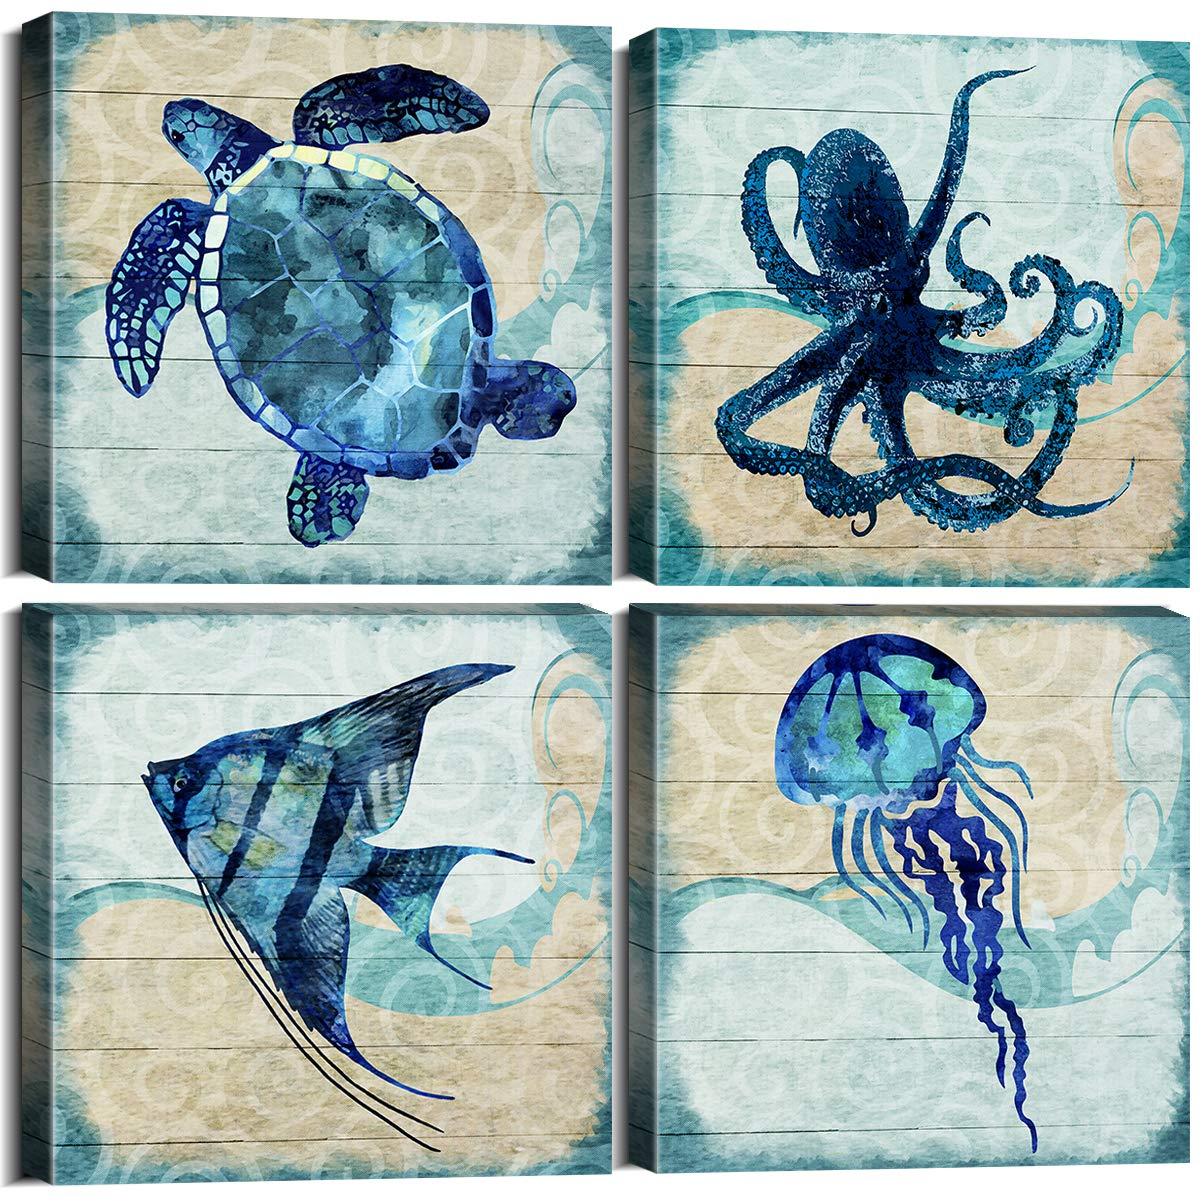 Ocean Animal Theme Teal Home Wall Art Decor Blue Mediterranean Style Canvas Prints Framed Stretched Ready to Hang Octopus Turtle Sea Fish Angelfish Pictures Posters Bathroom Set of 4 Panels 12 x 12""